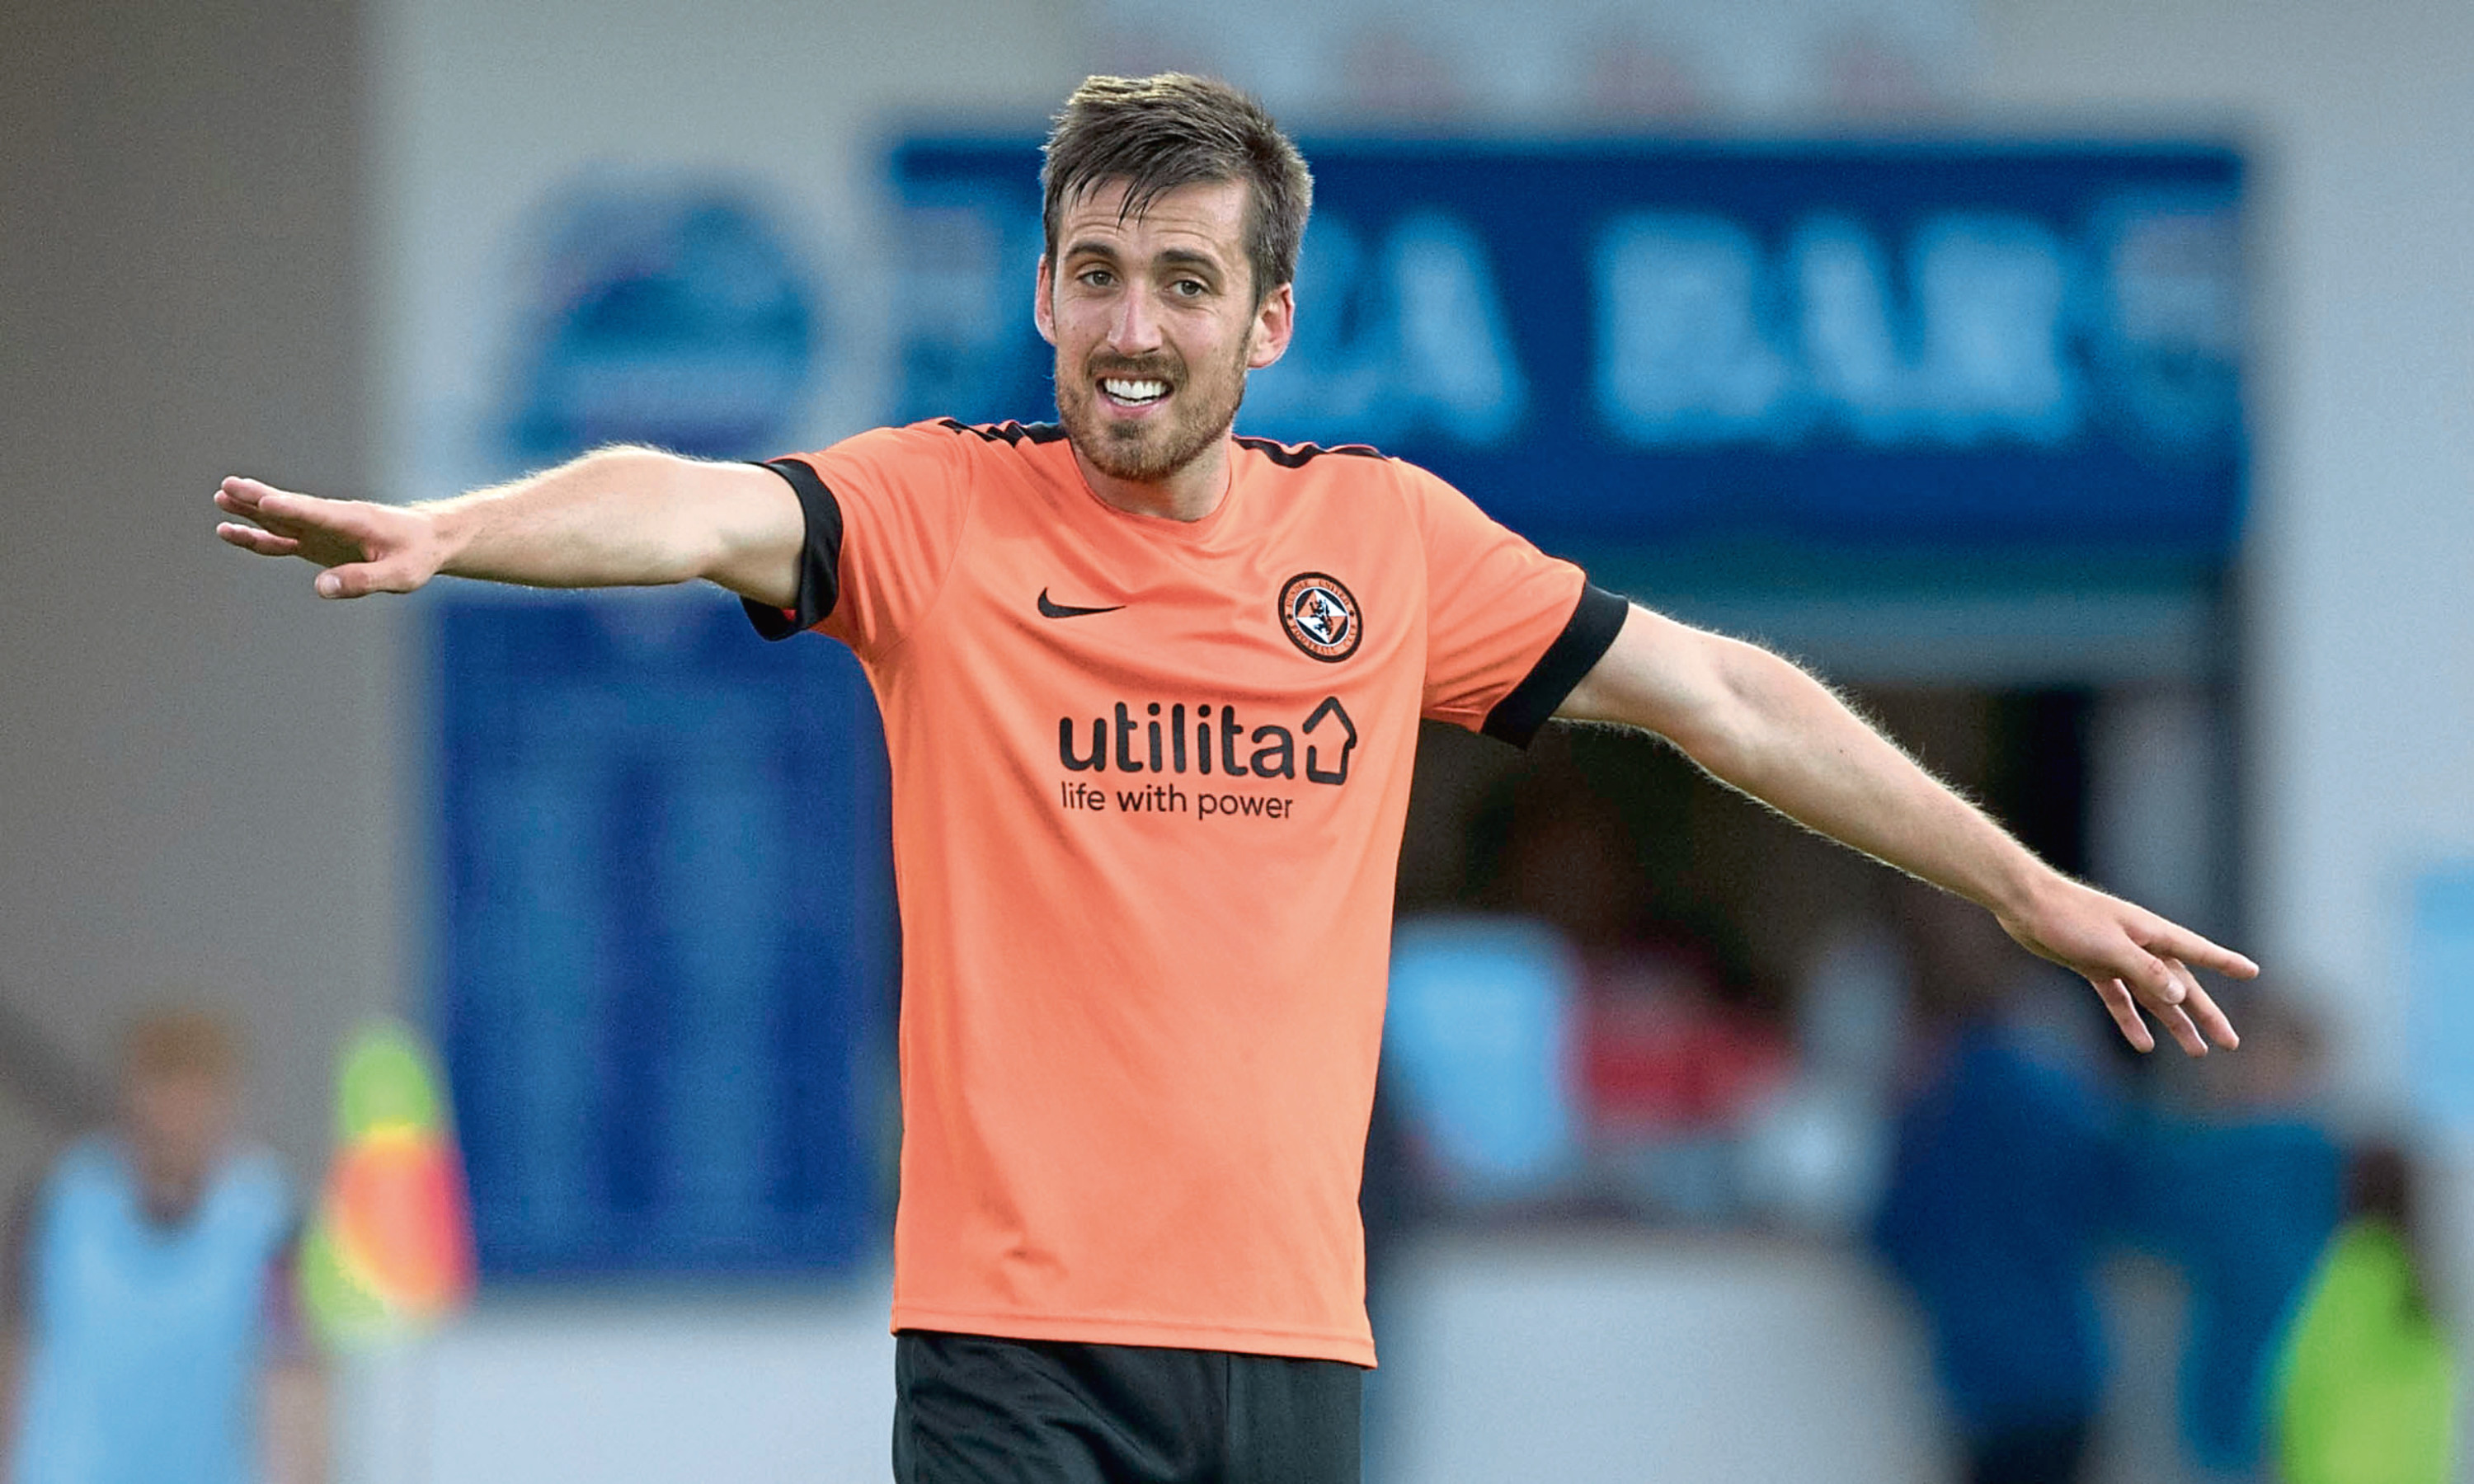 Callum Booth in action for Dundee United